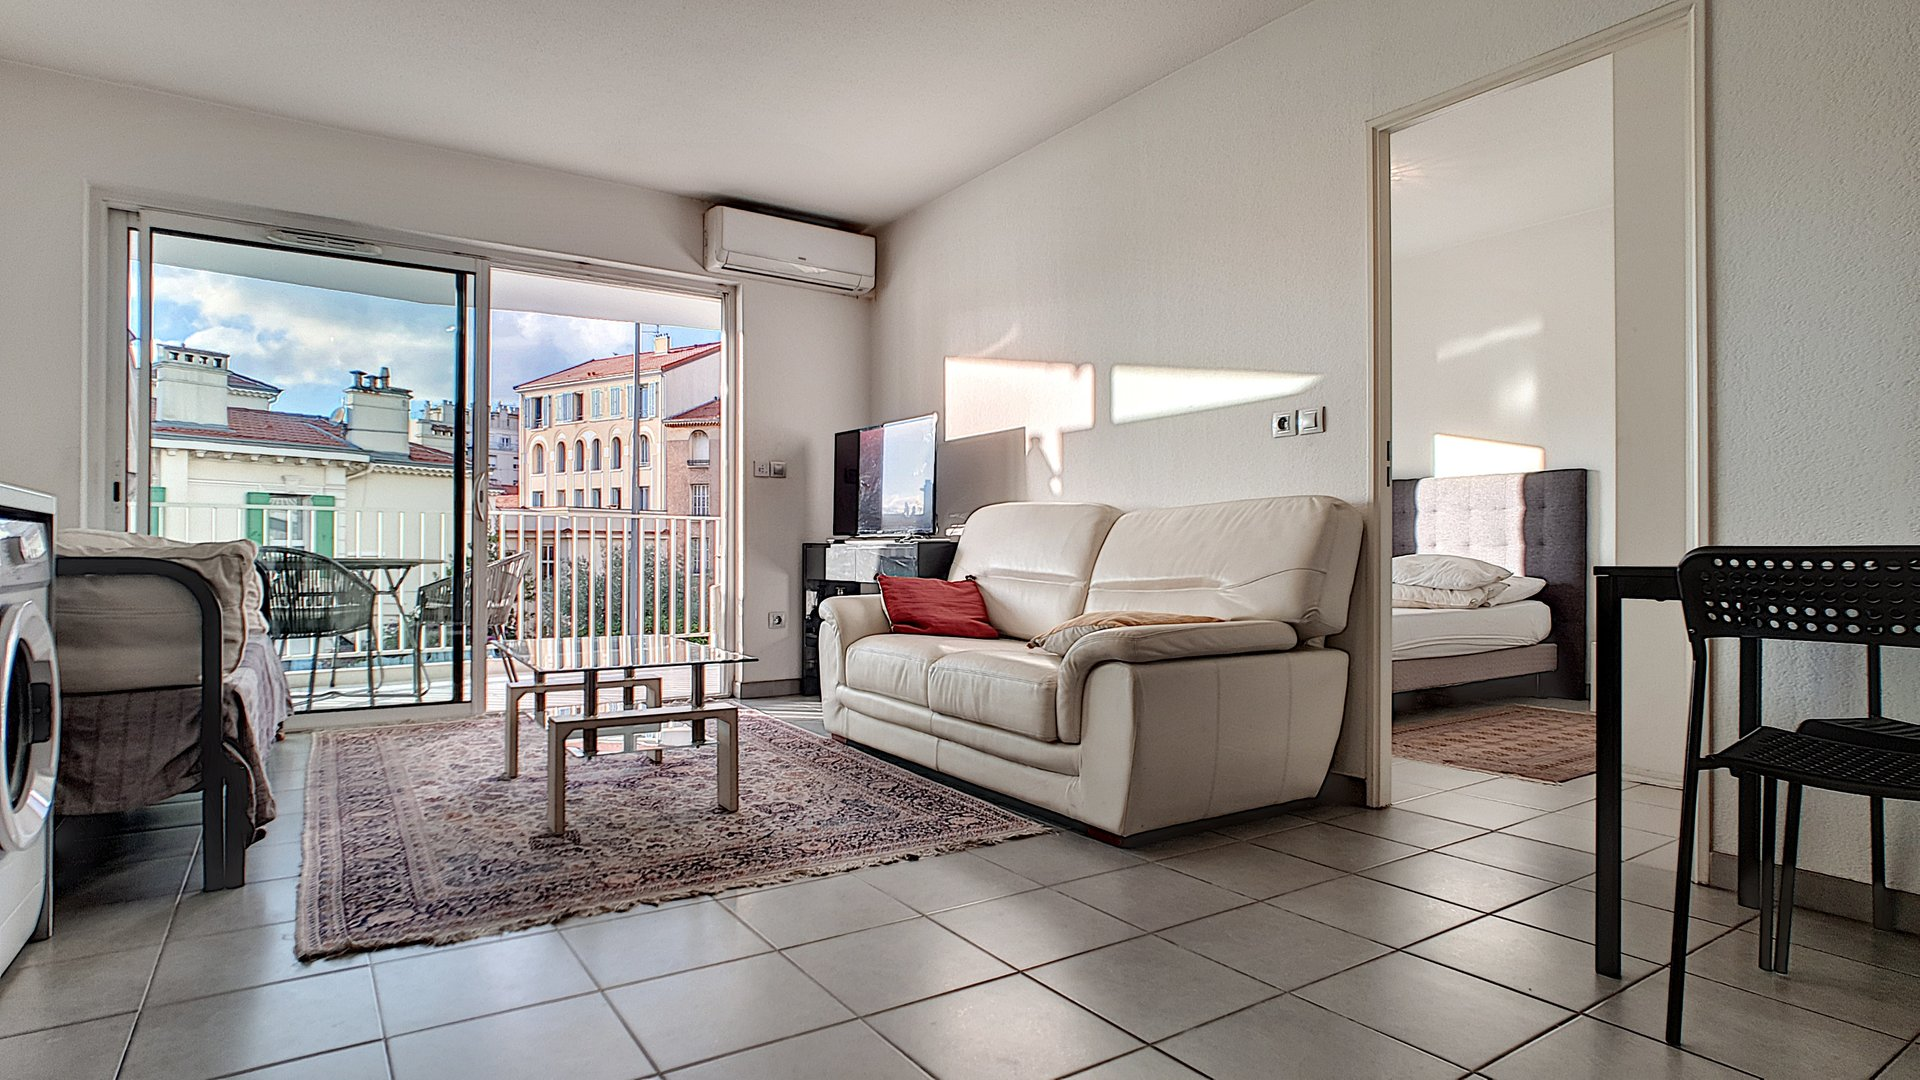 Apartment for sale in Cannes close to the centre